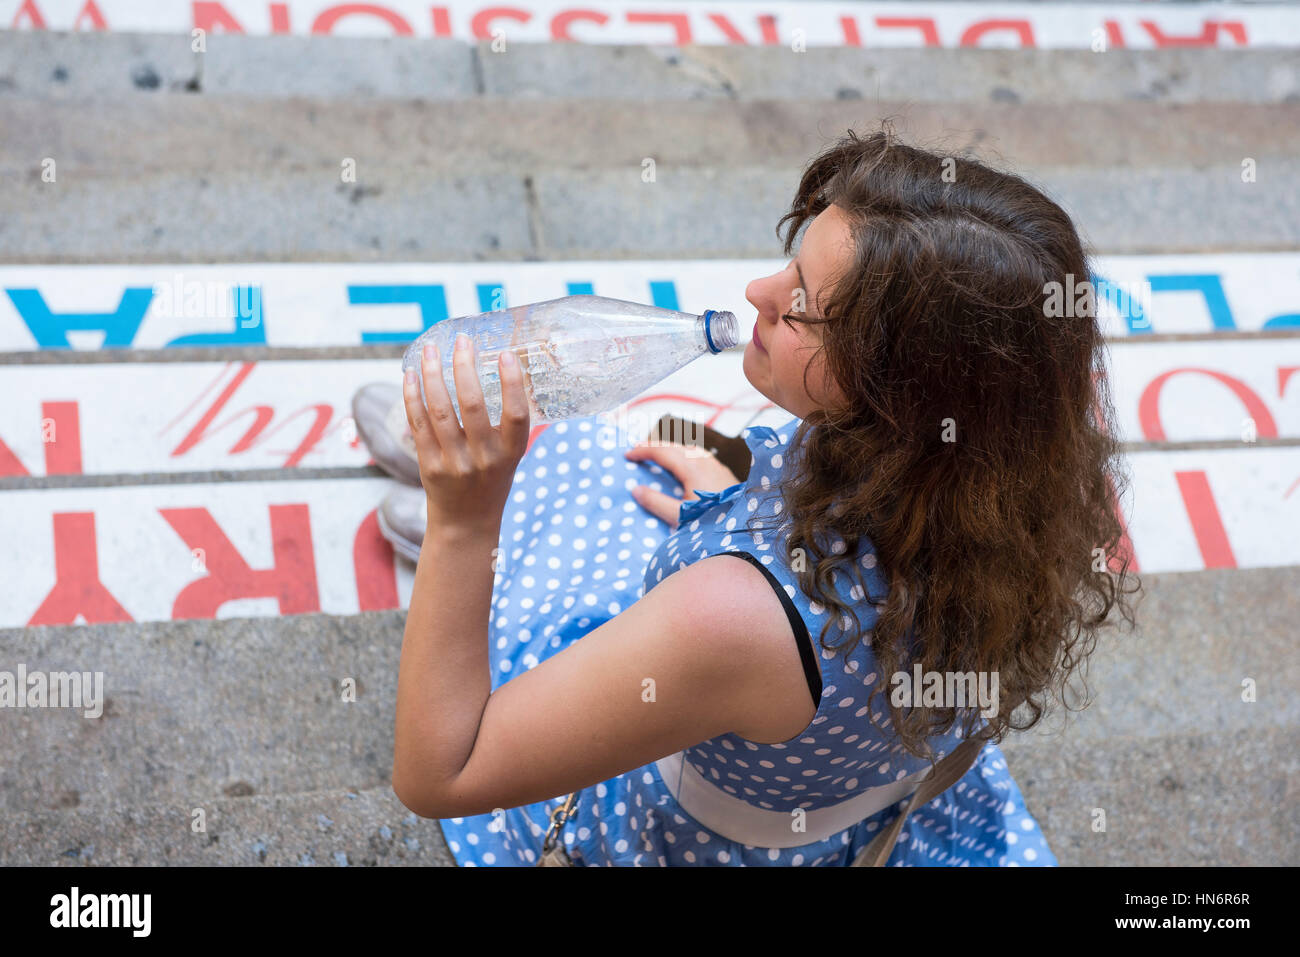 Young woman with blue polka dot dress sitting on steps drinking carbonated water in a clear bottle and laughing - Stock Image